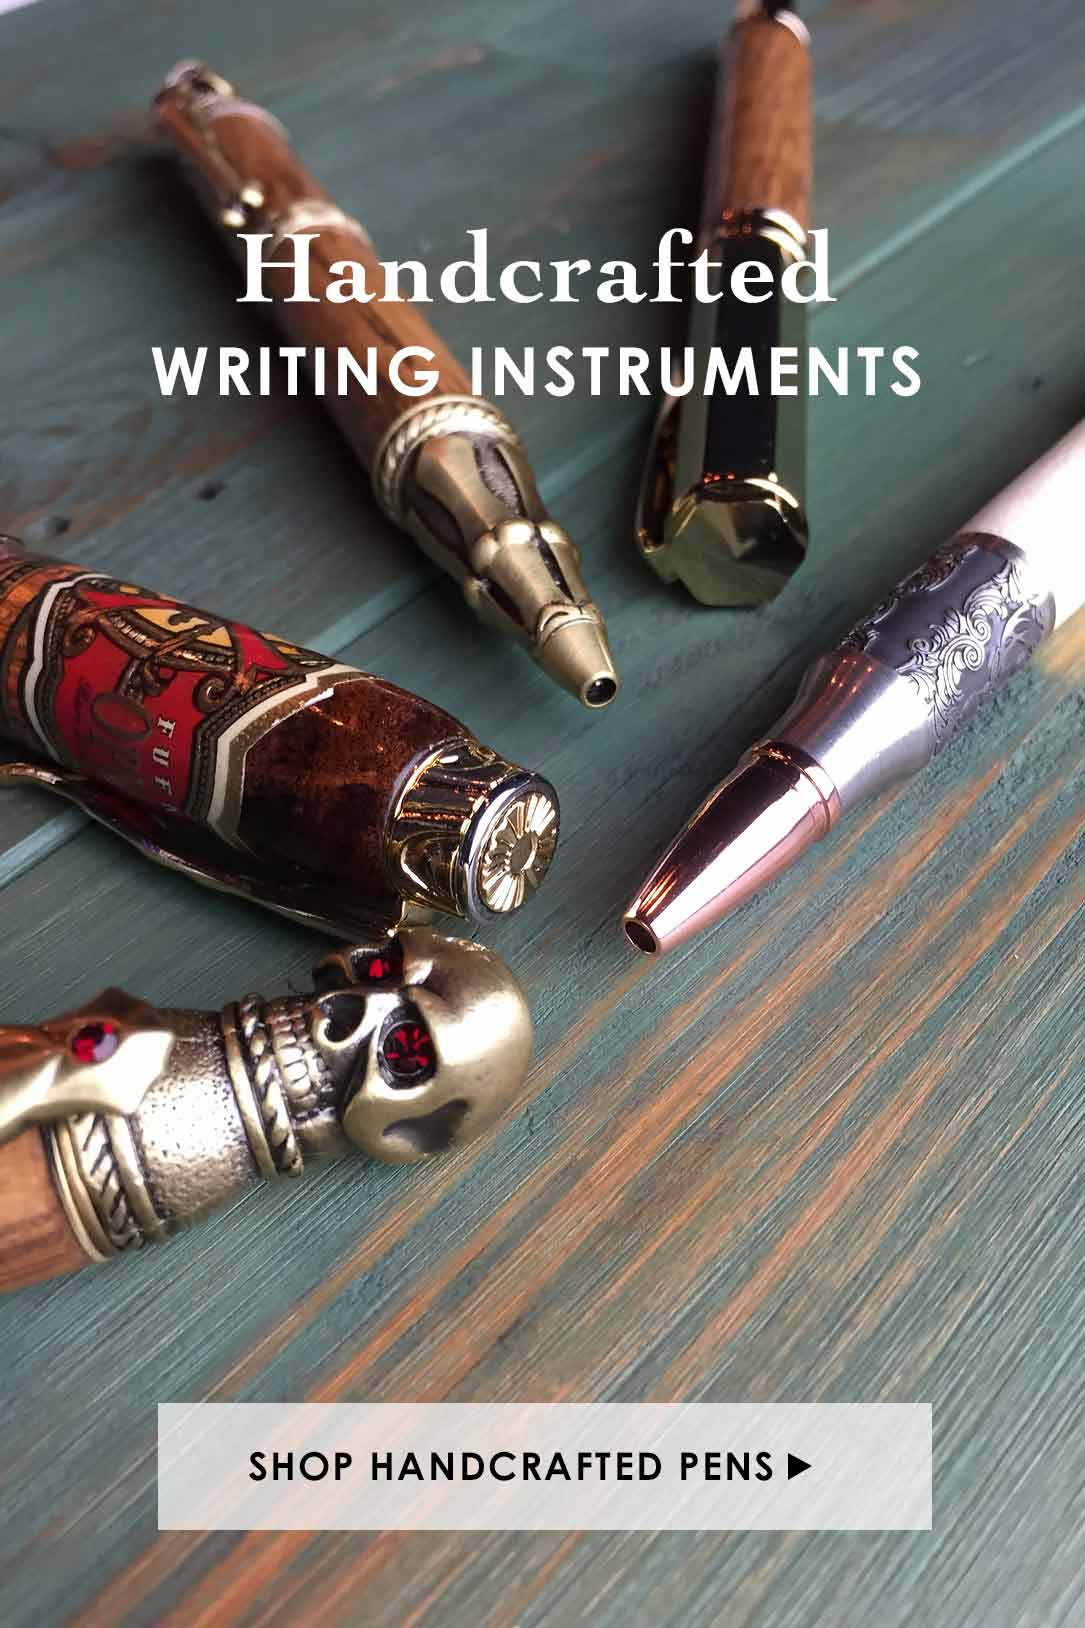 Shop Unique Handcrafted Pens and Writing Instraments